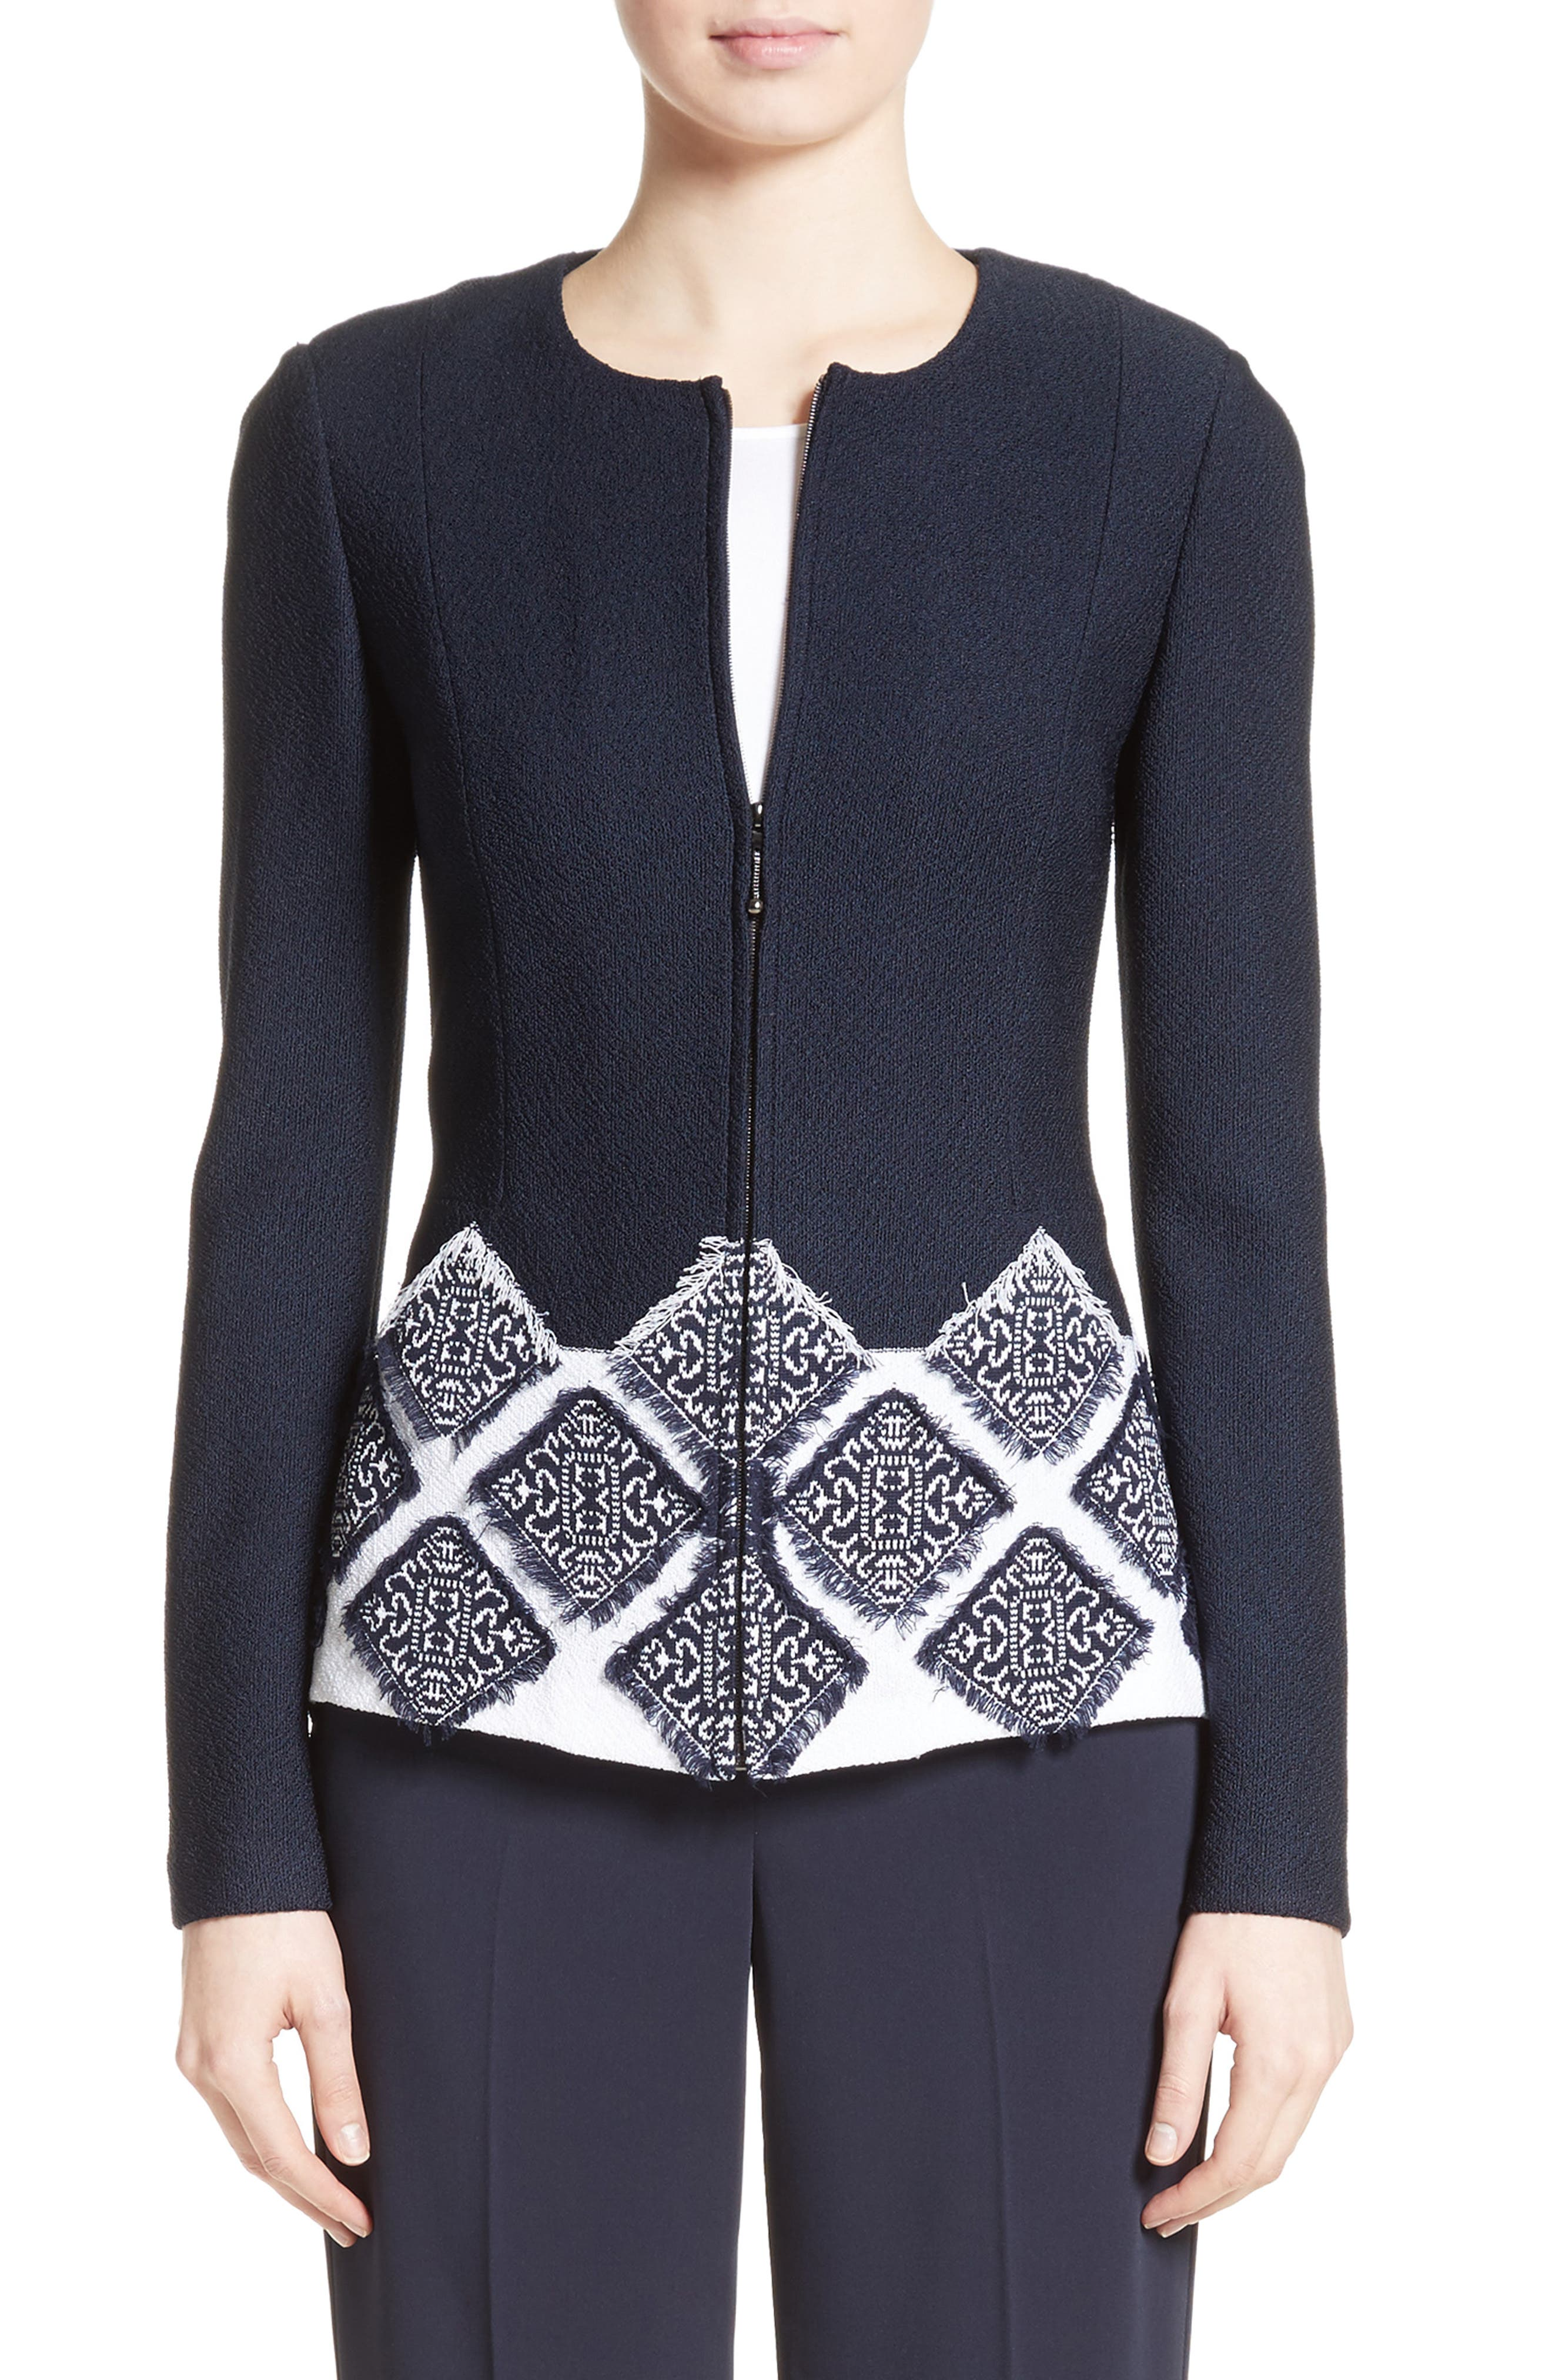 Main Image - St. John Collection Ahem Knit Fil Coupé Jacket